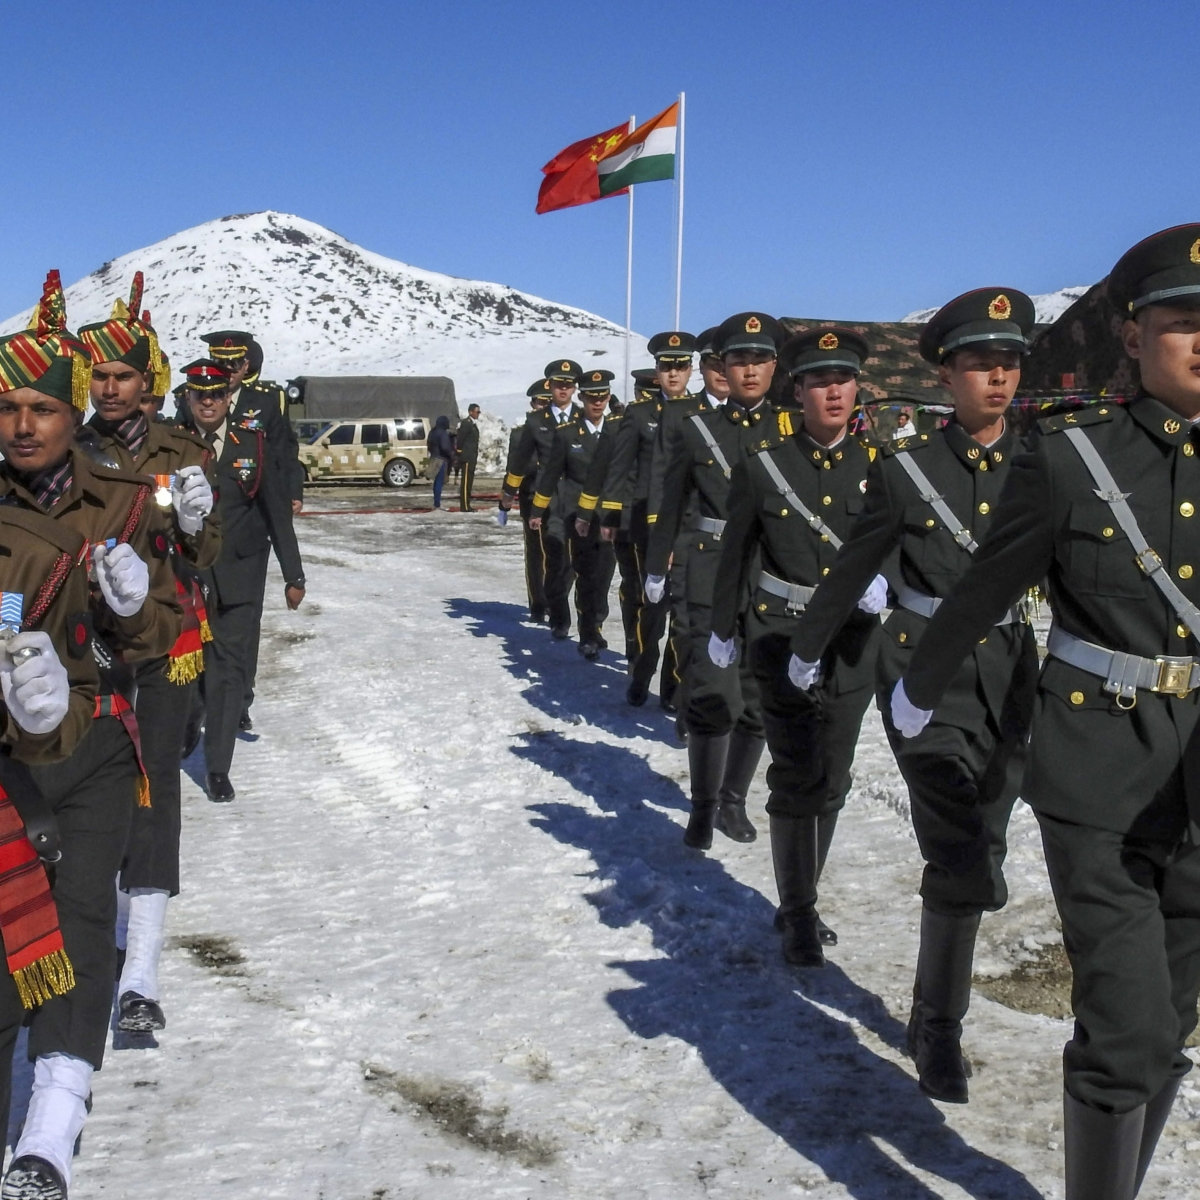 Chinese commanding officer was among those killed in clash